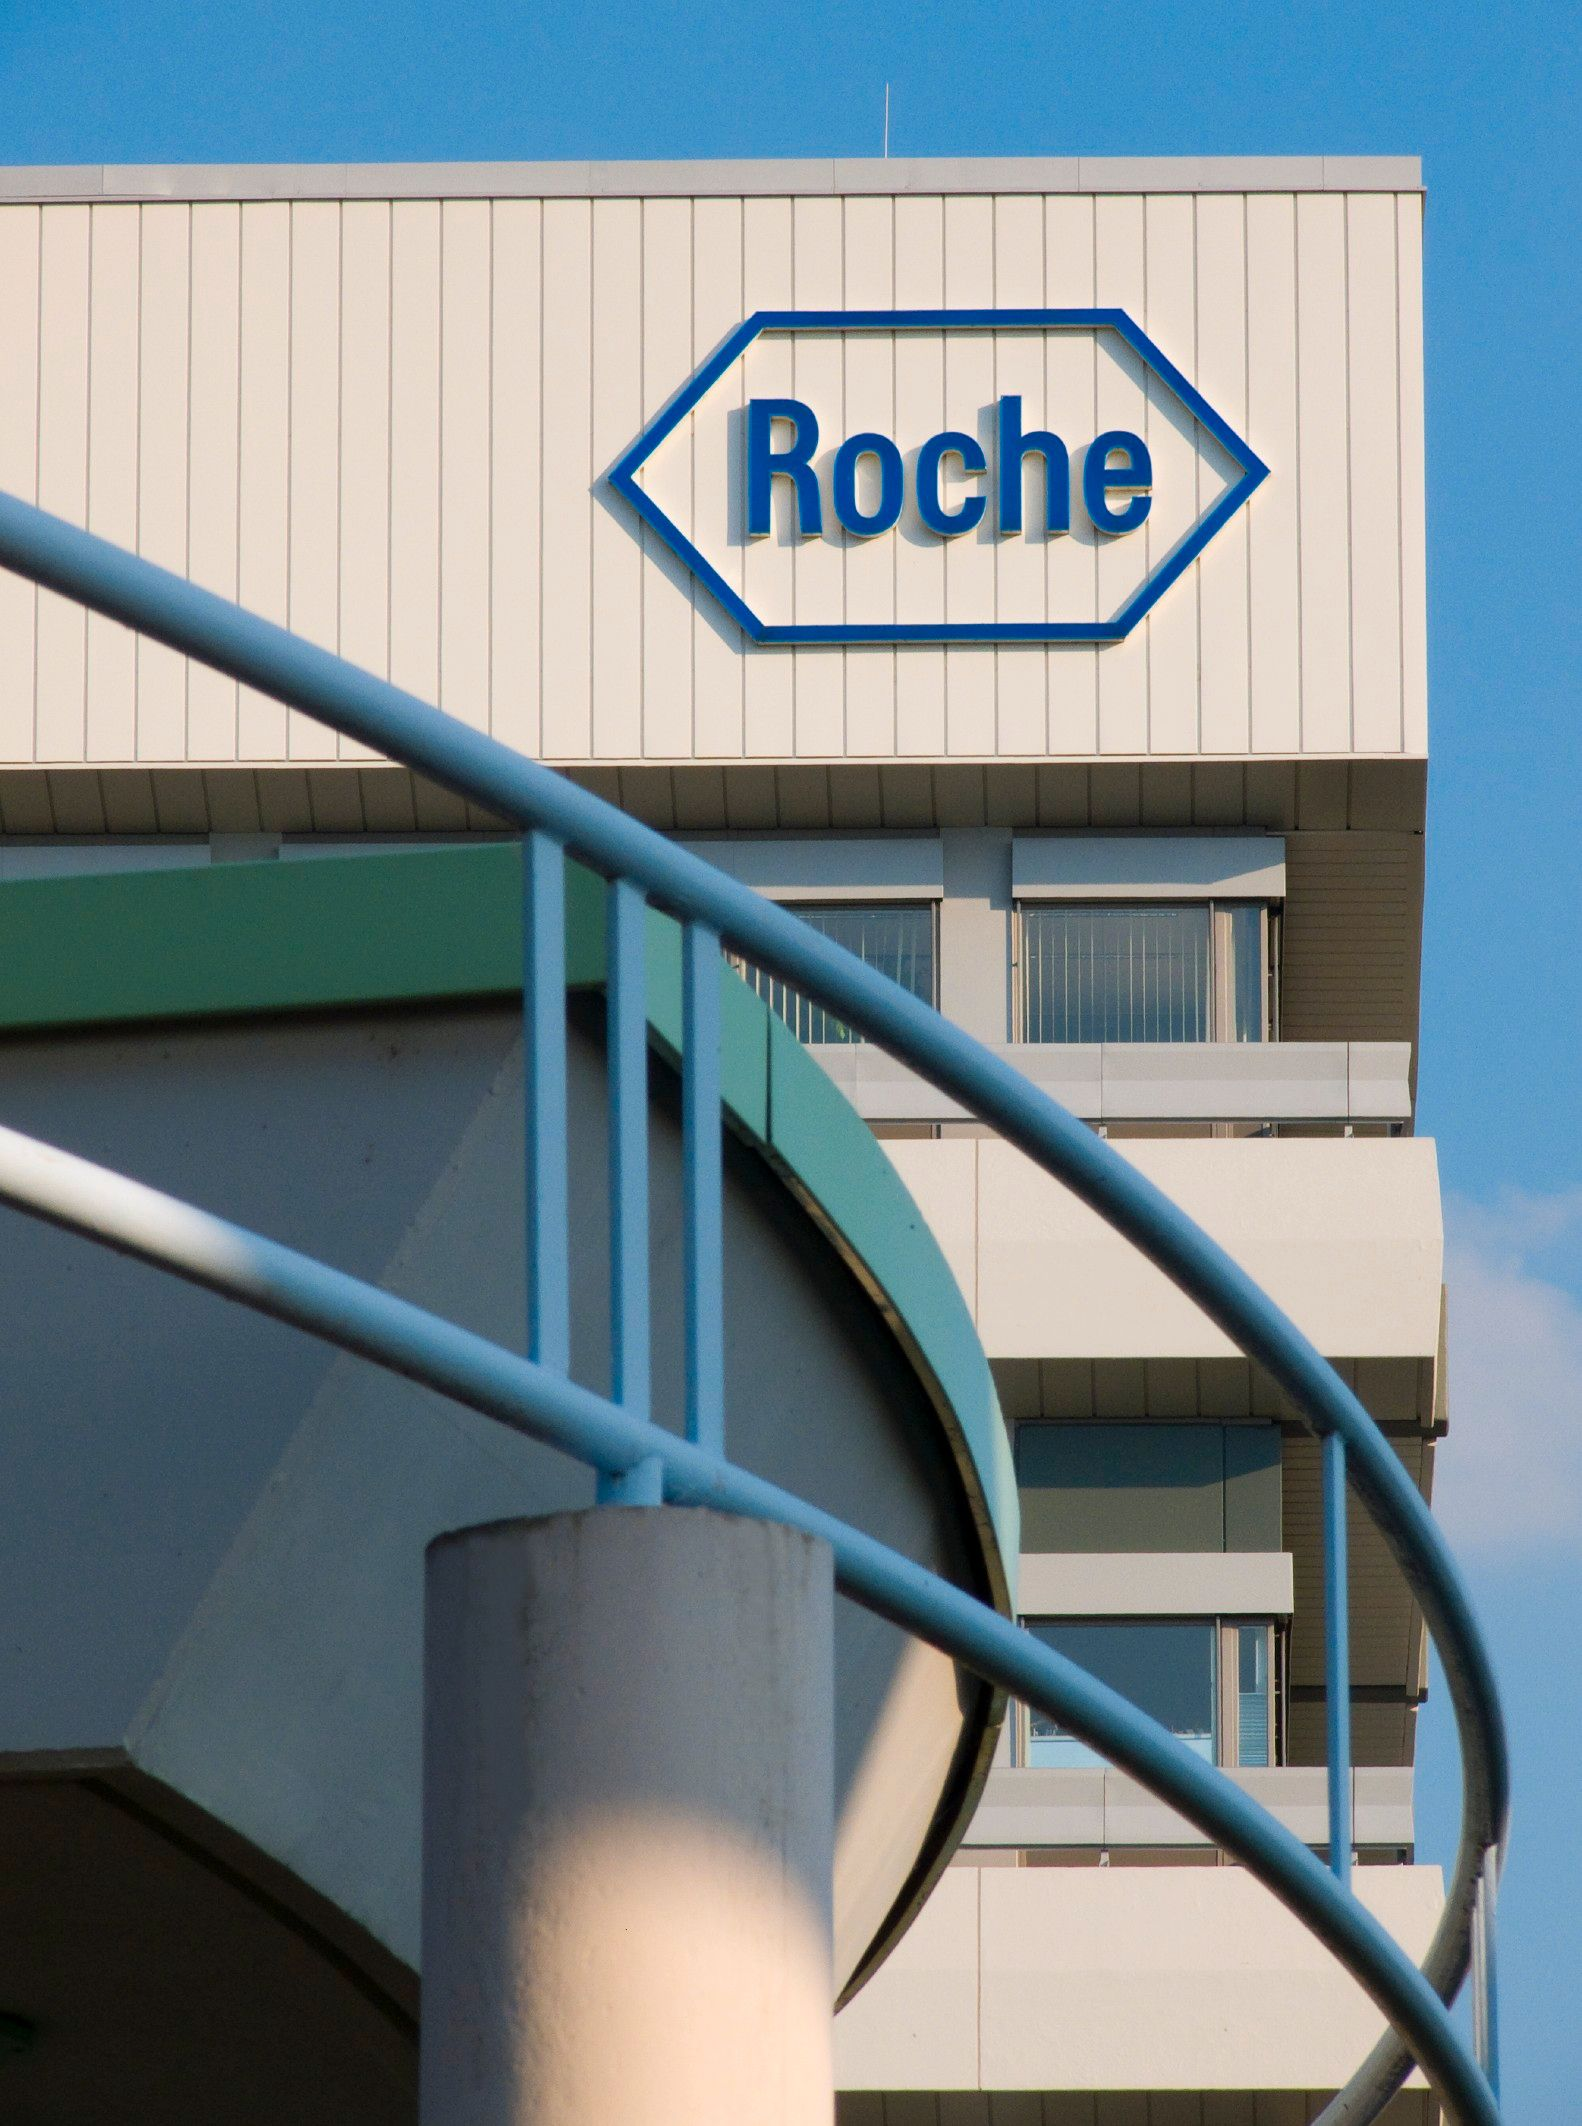 Roche Diagnostics Design Center, Mannheim (Roche-Logo)